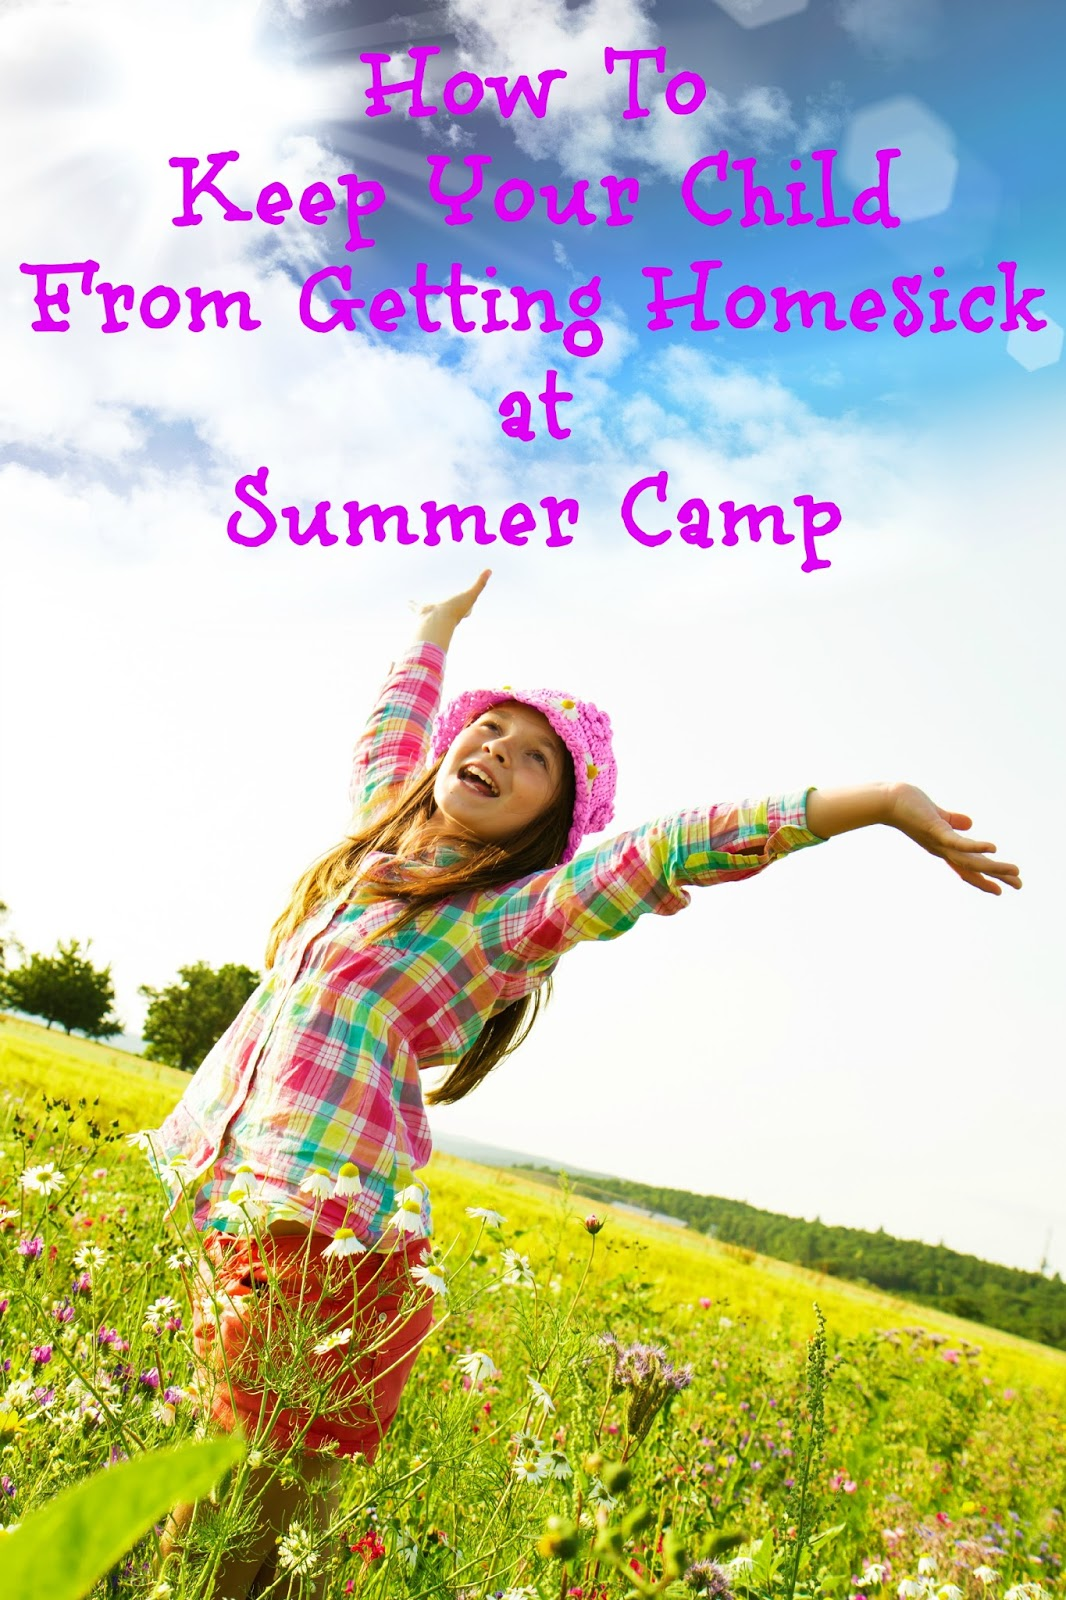 4 great tips to help keep your child from getting homesick at #summer #camp. #parenting